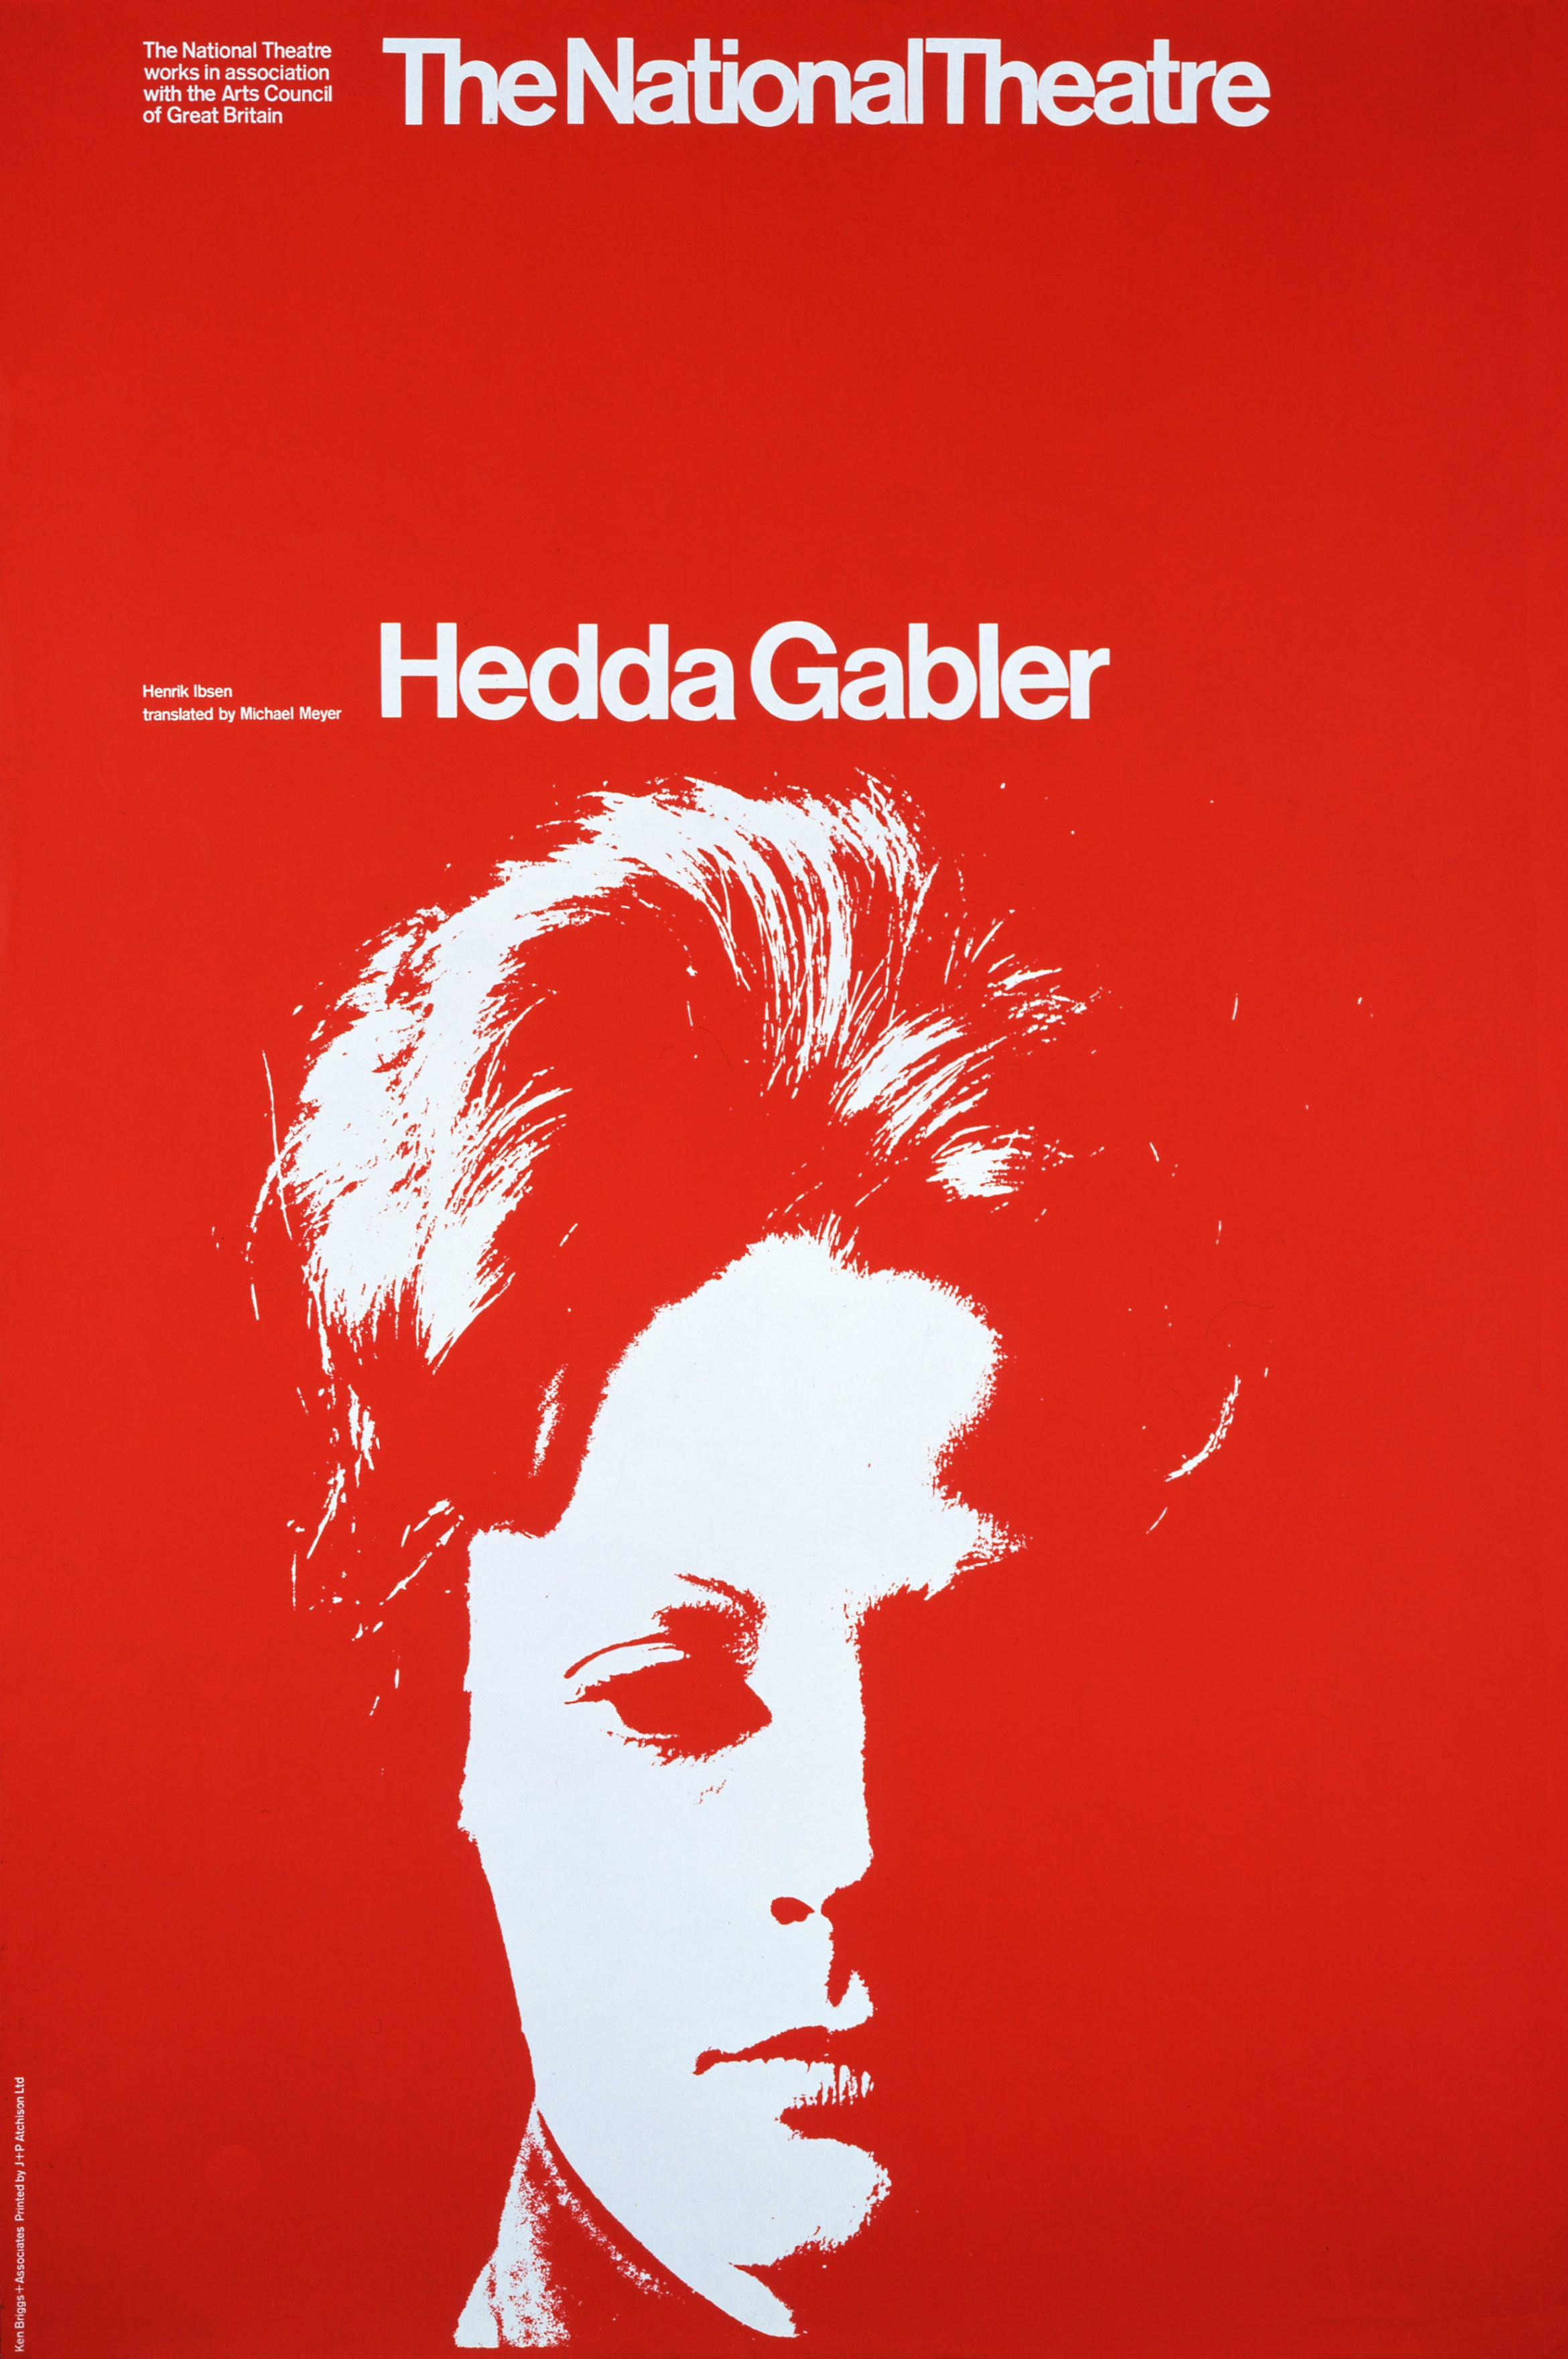 Hedda Gabler - Poster design Ken Briggs and Associates (1970).jpg